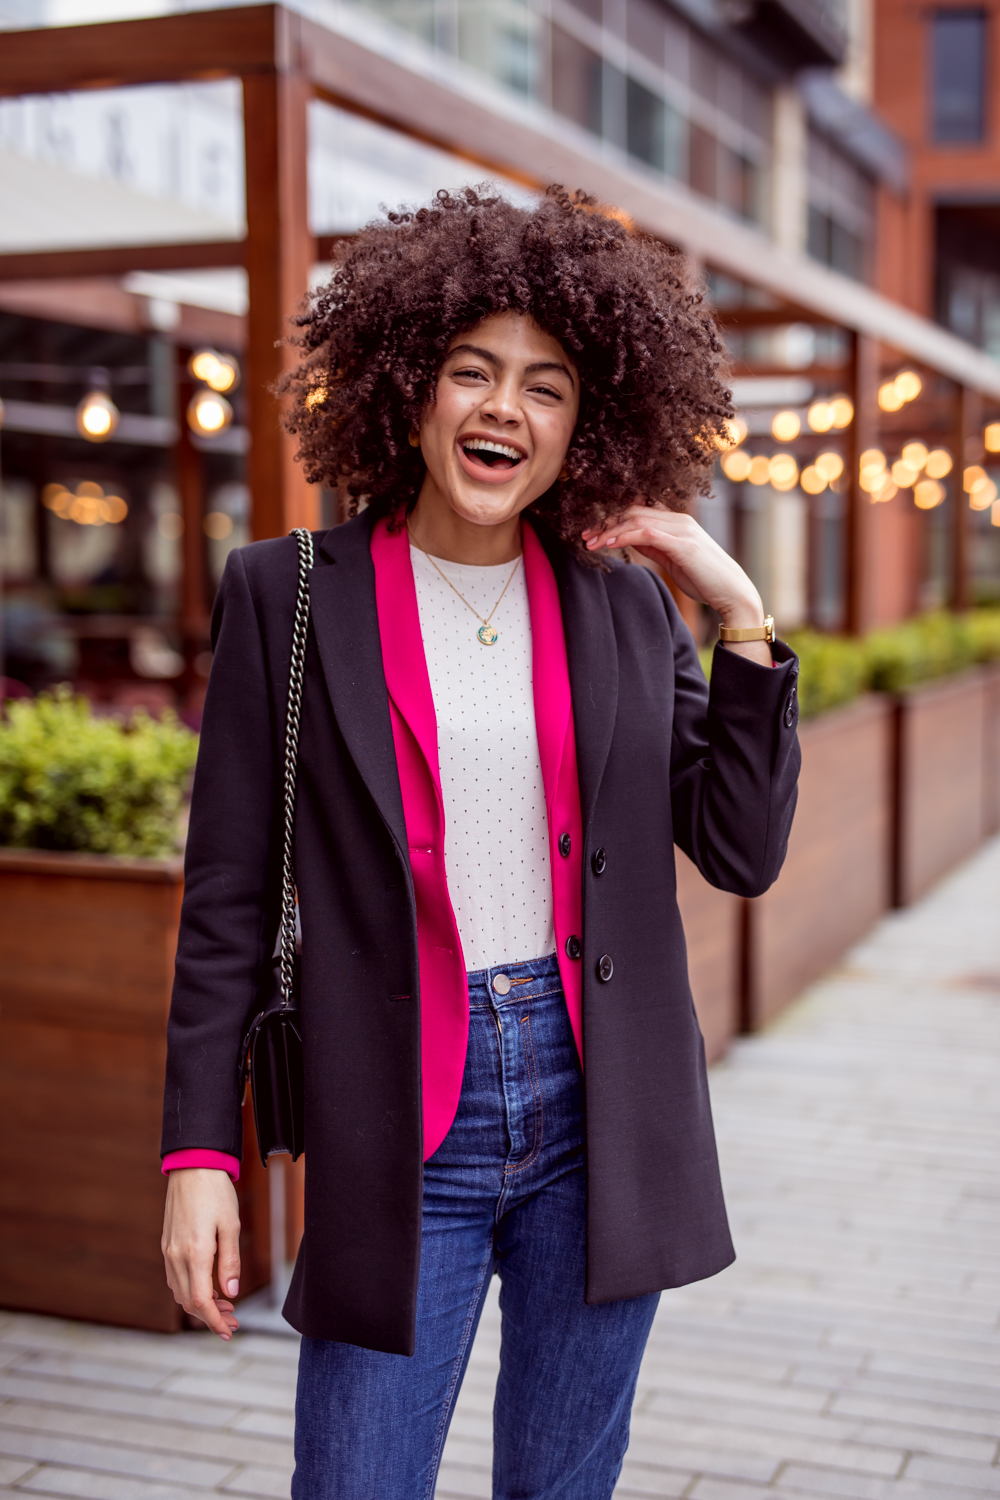 French Connection Sundae Pink Suit Blazer and Jigsaw black jacket Spring layering